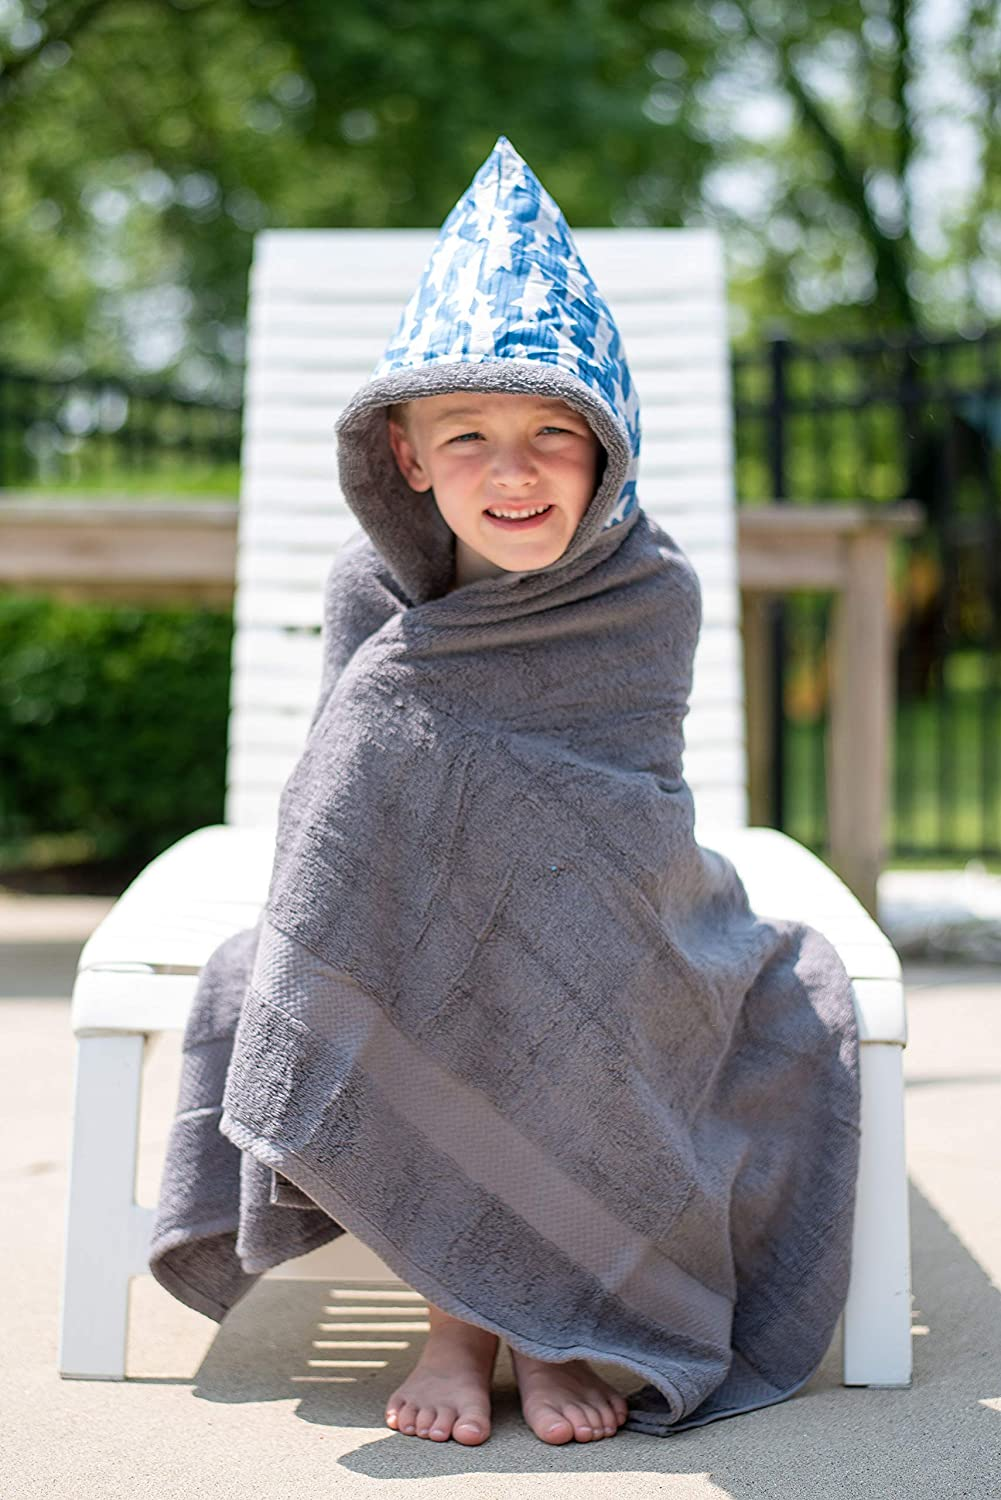 Beach Towel ✱ Extra Large Size 30x54 ✱ Soft Plush Absorbent ✱ Handmade in USA Toddler Big Kids ✱ Bath Pool Cover Abigail Grey Hooded Towel ✱ Age 0-10 Years ✱ Infant